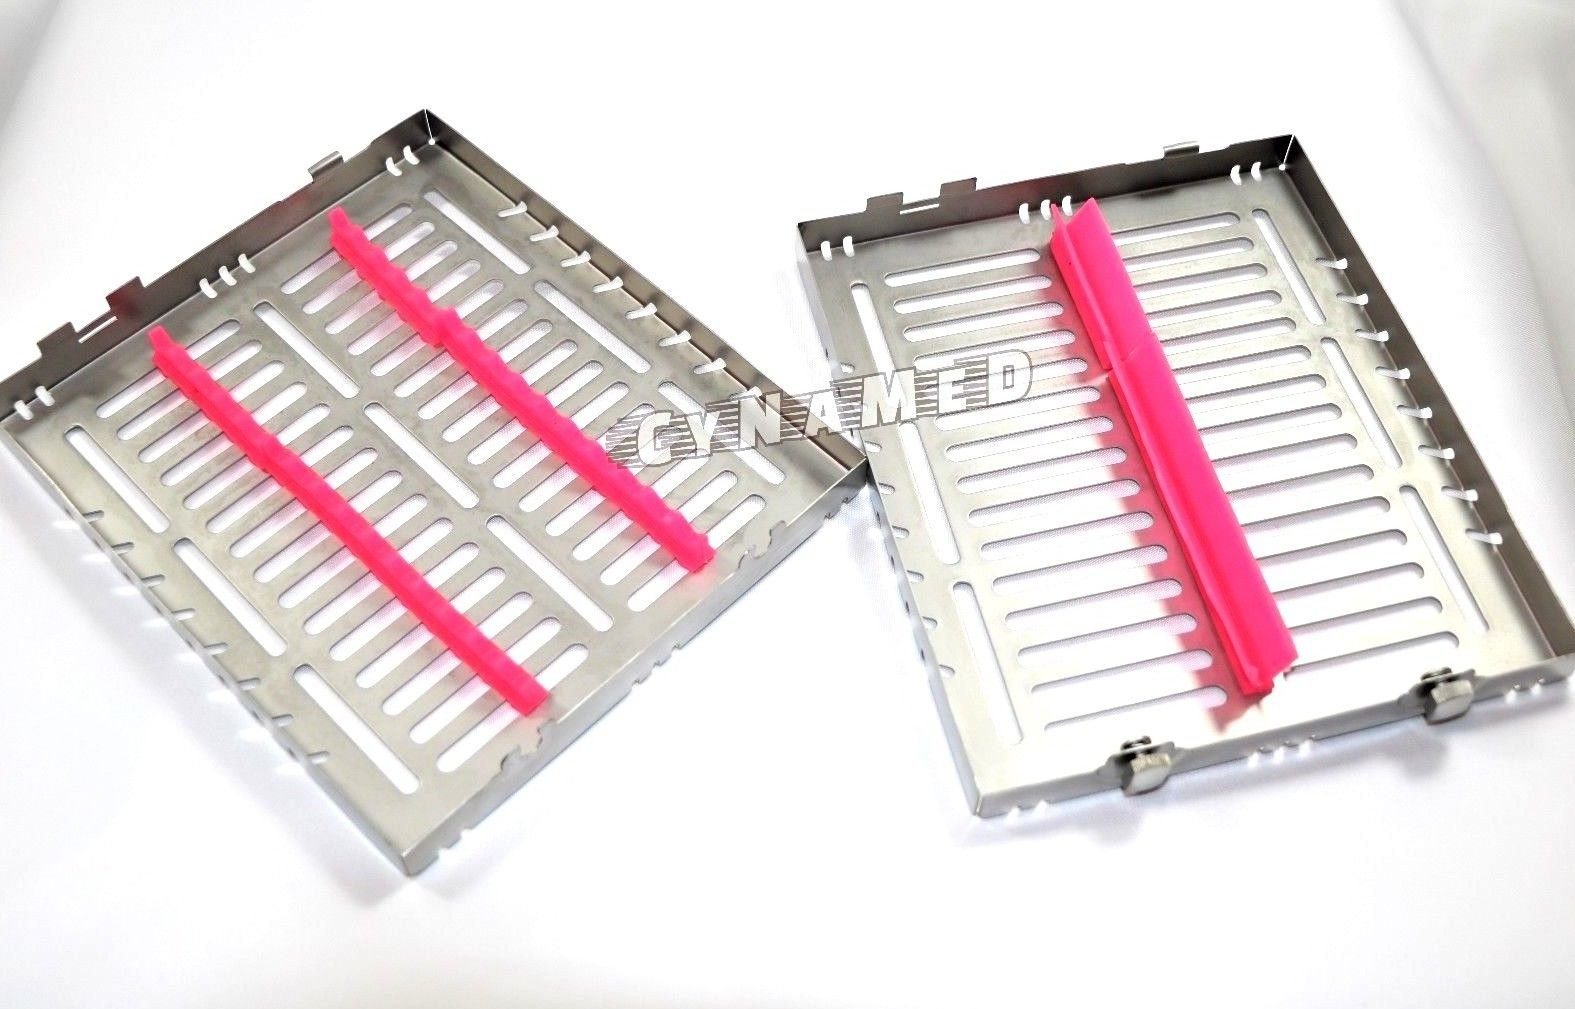 5 German Dental Autoclave Sterilization Cassette Tray for 15 Instruments 8.25X7.25X1.25'' Pink CYNAMED by CYNAMED (Image #5)